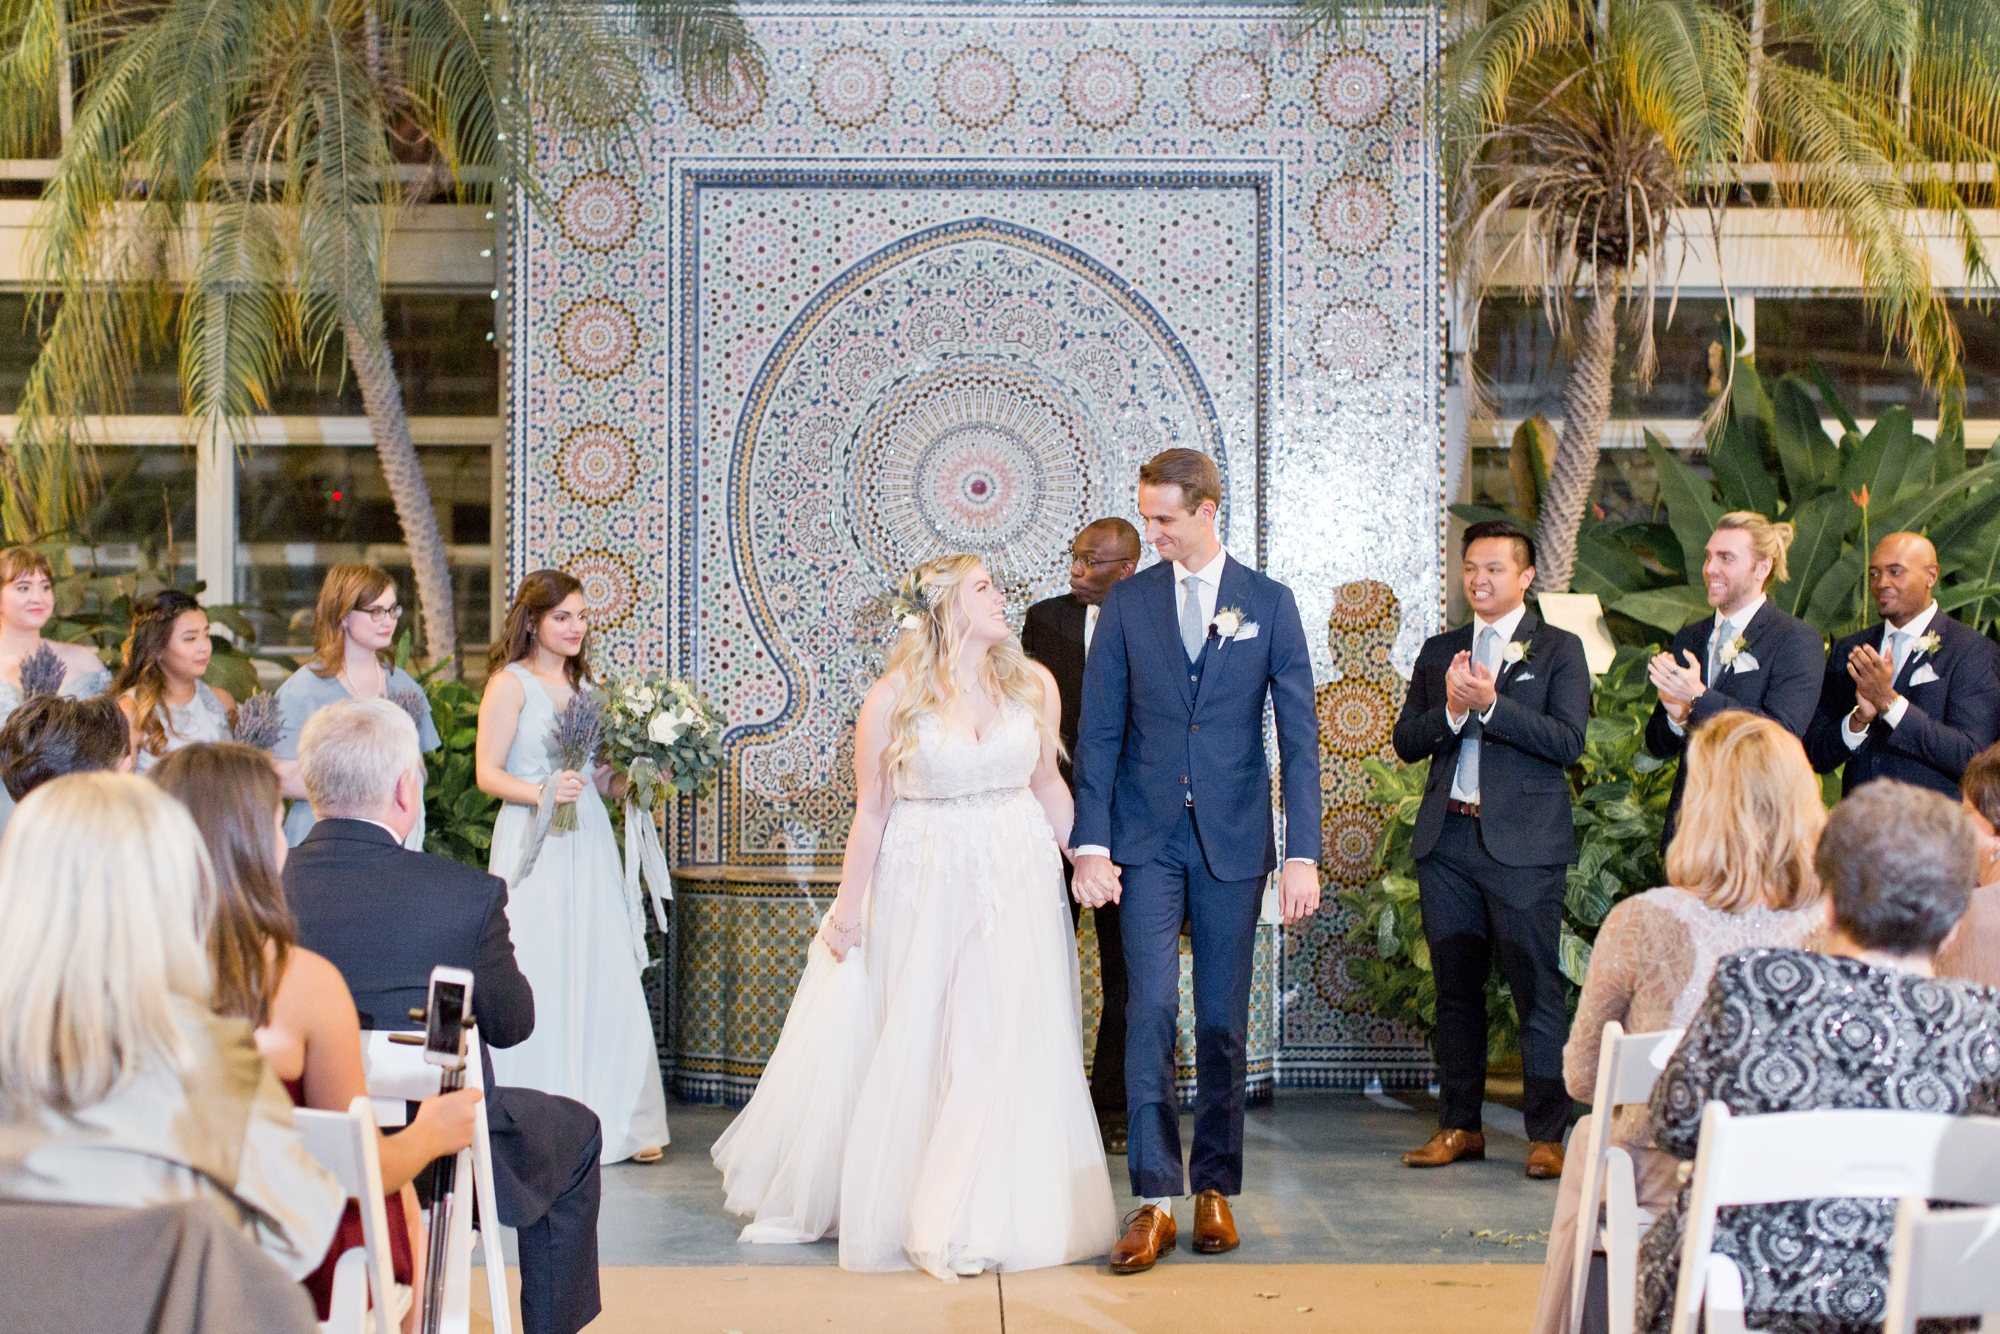 Garfield Park Conservatory Wedding.Maria Harte Photography Garfield Park Conservatory Chicago Wedding